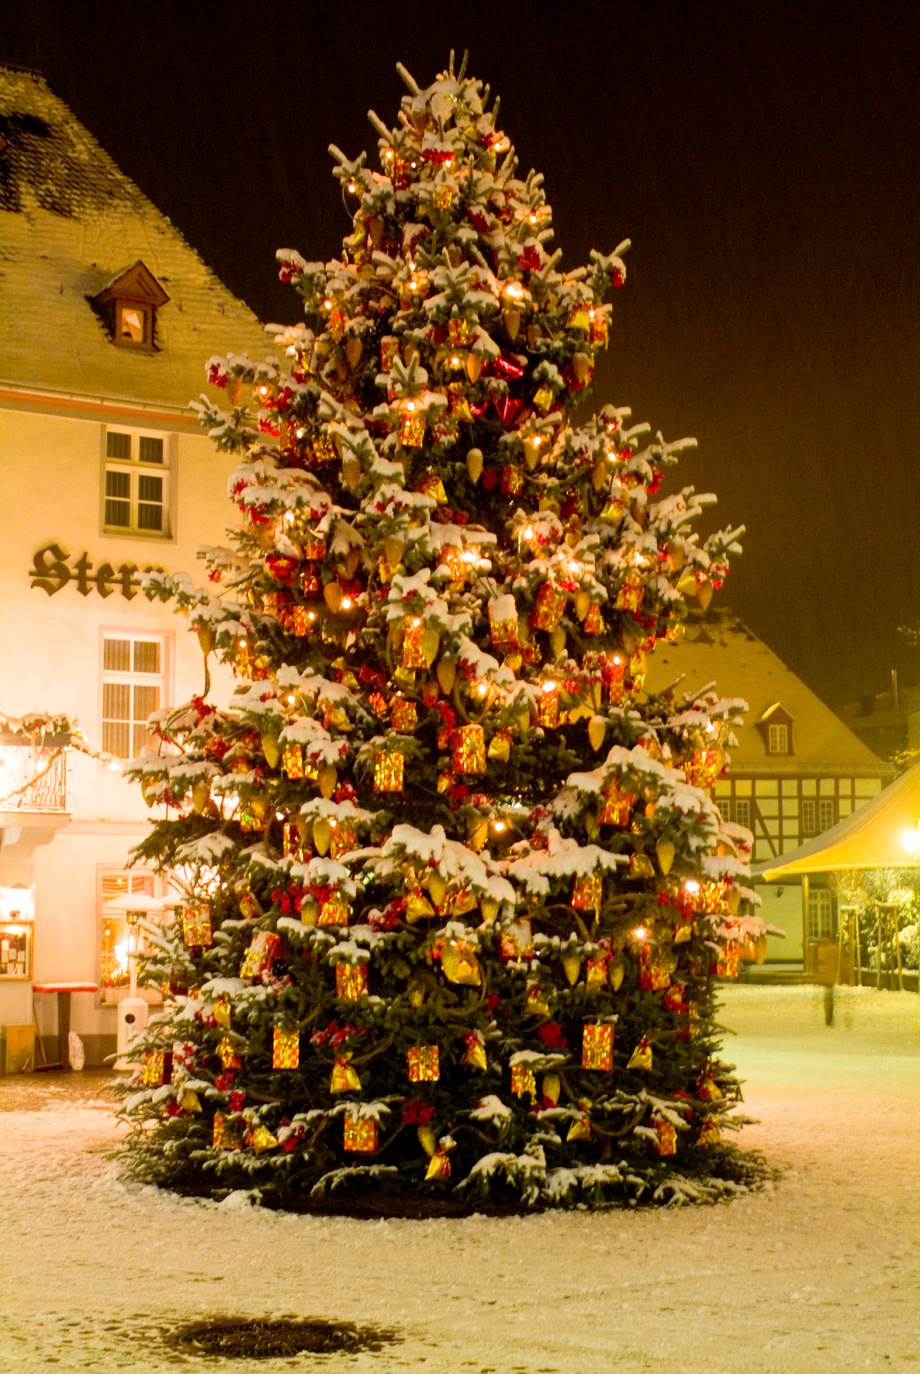 Christmas Market in the Ahr Valley